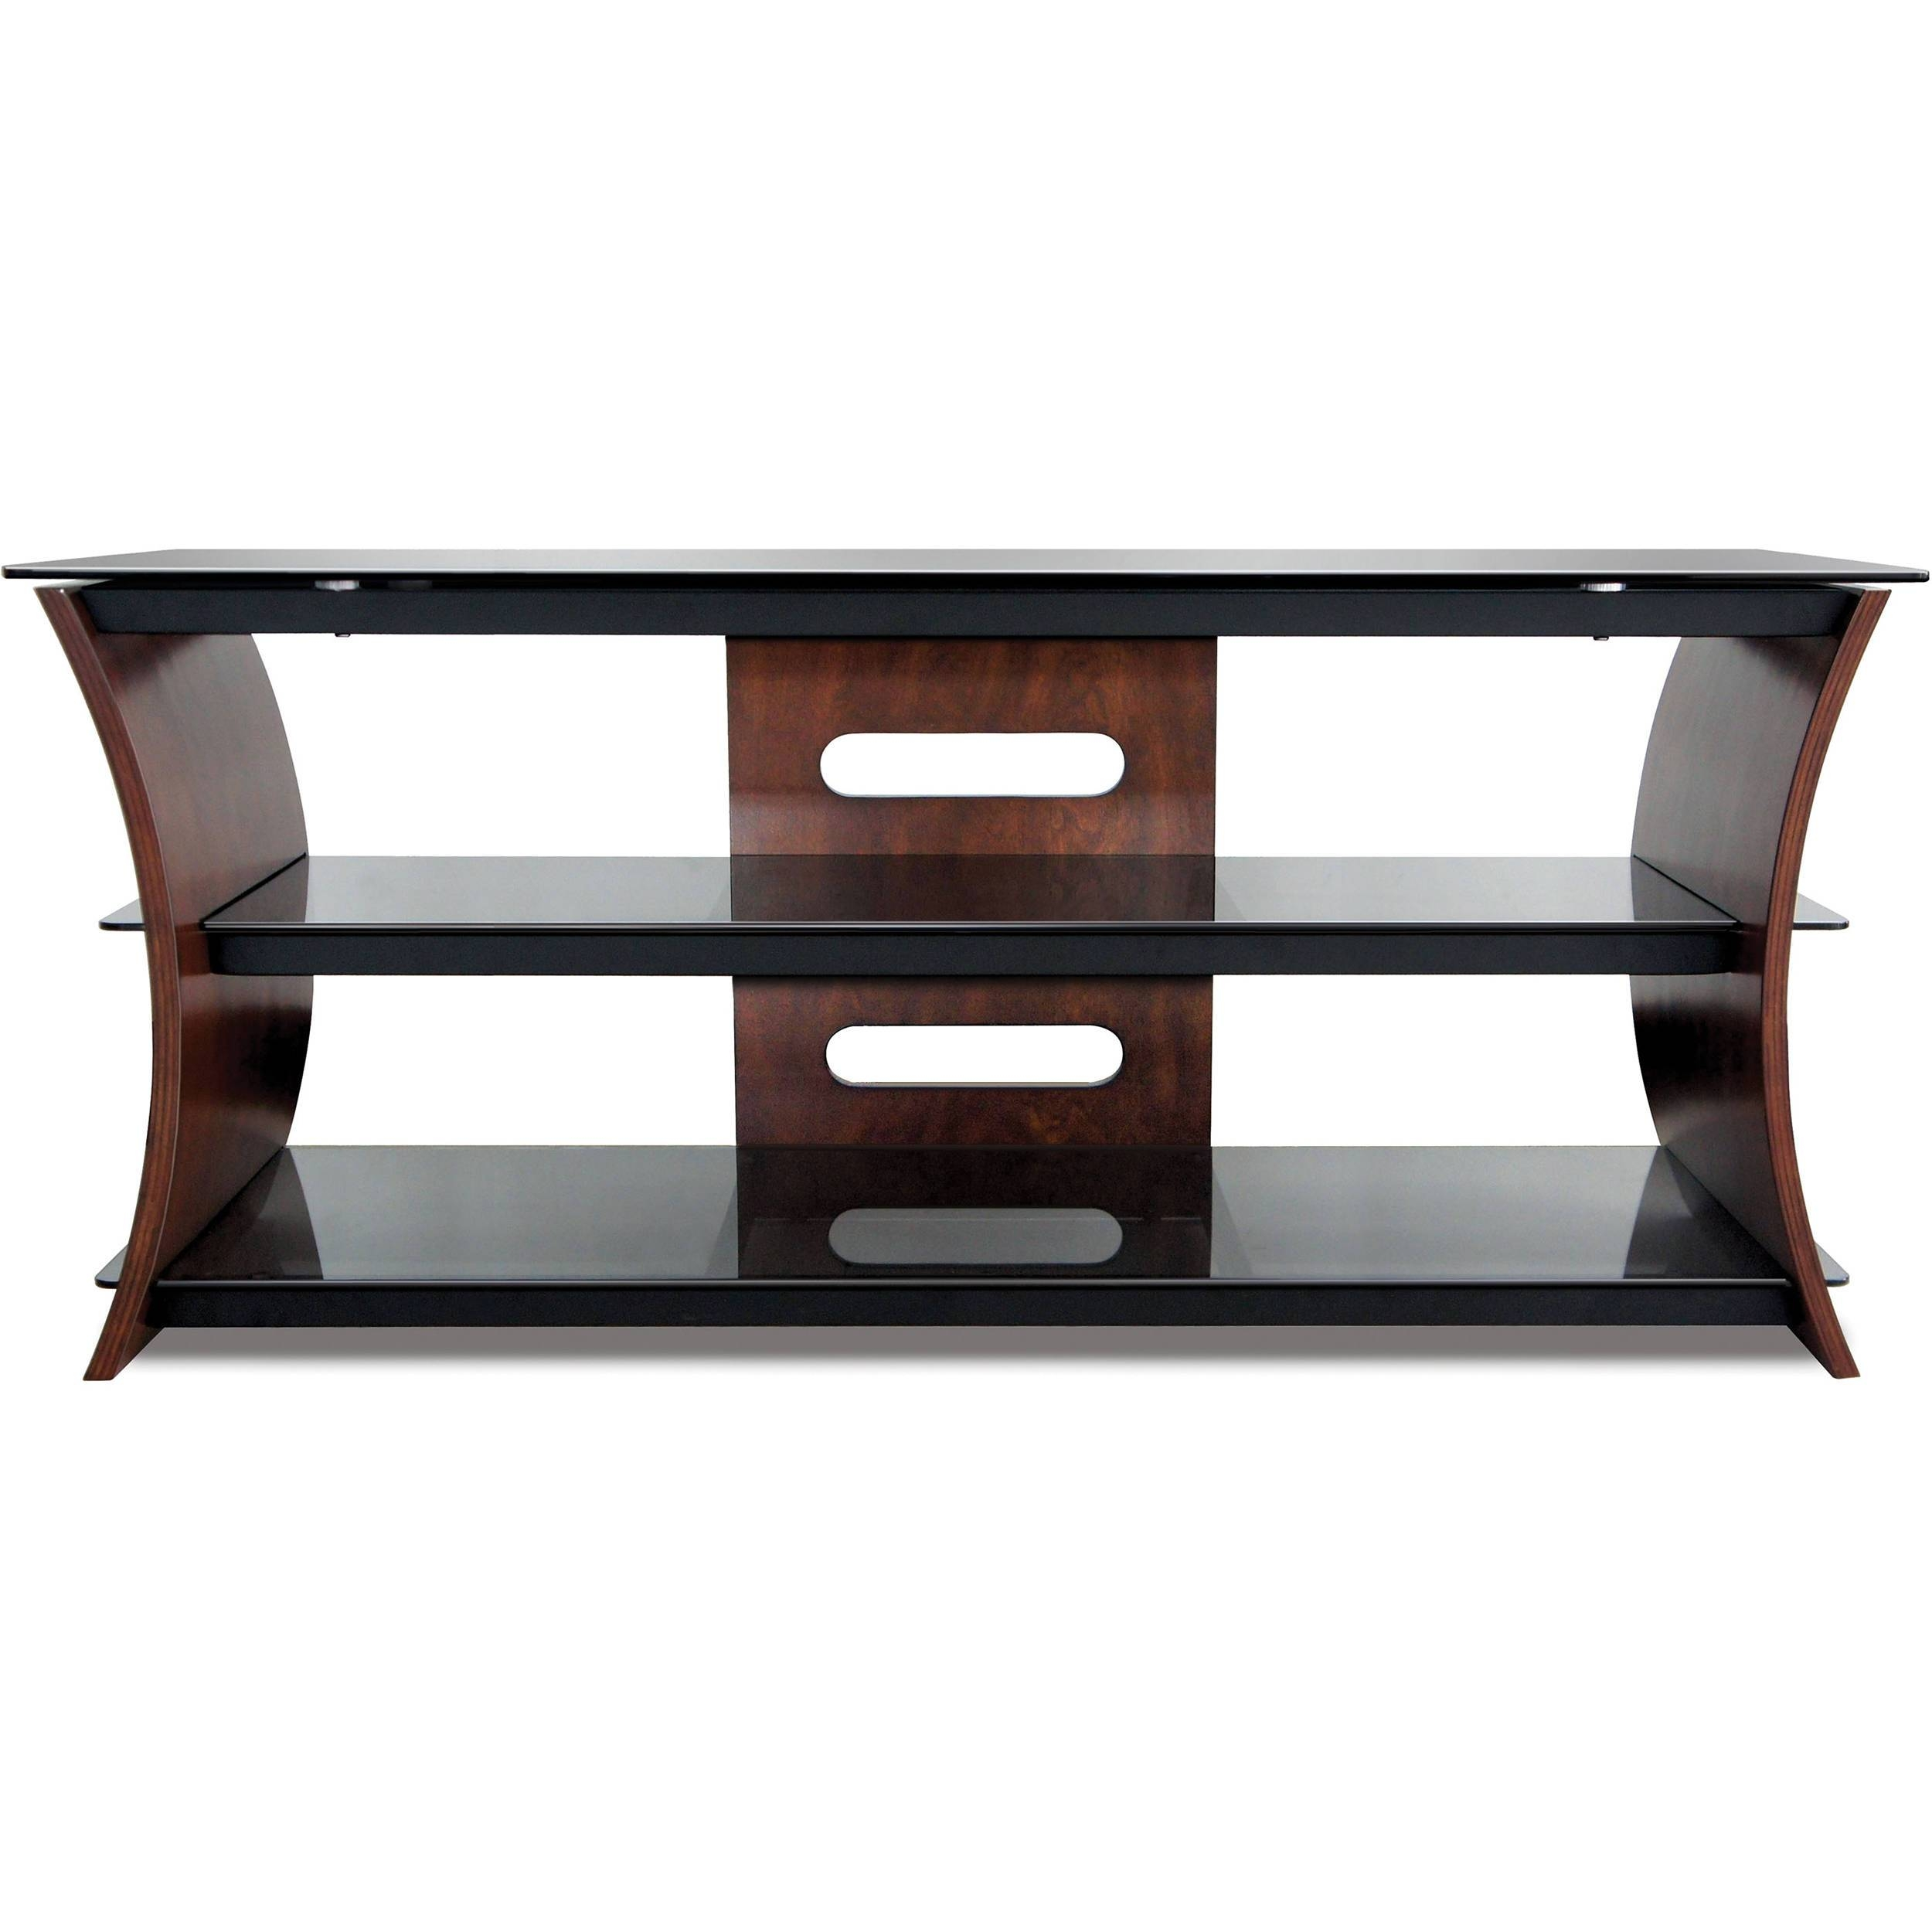 Bell'o Cw356 Curved Wood Tv Stand Cw356 B&h Photo Video within Curve Tv Stands (Image 3 of 15)